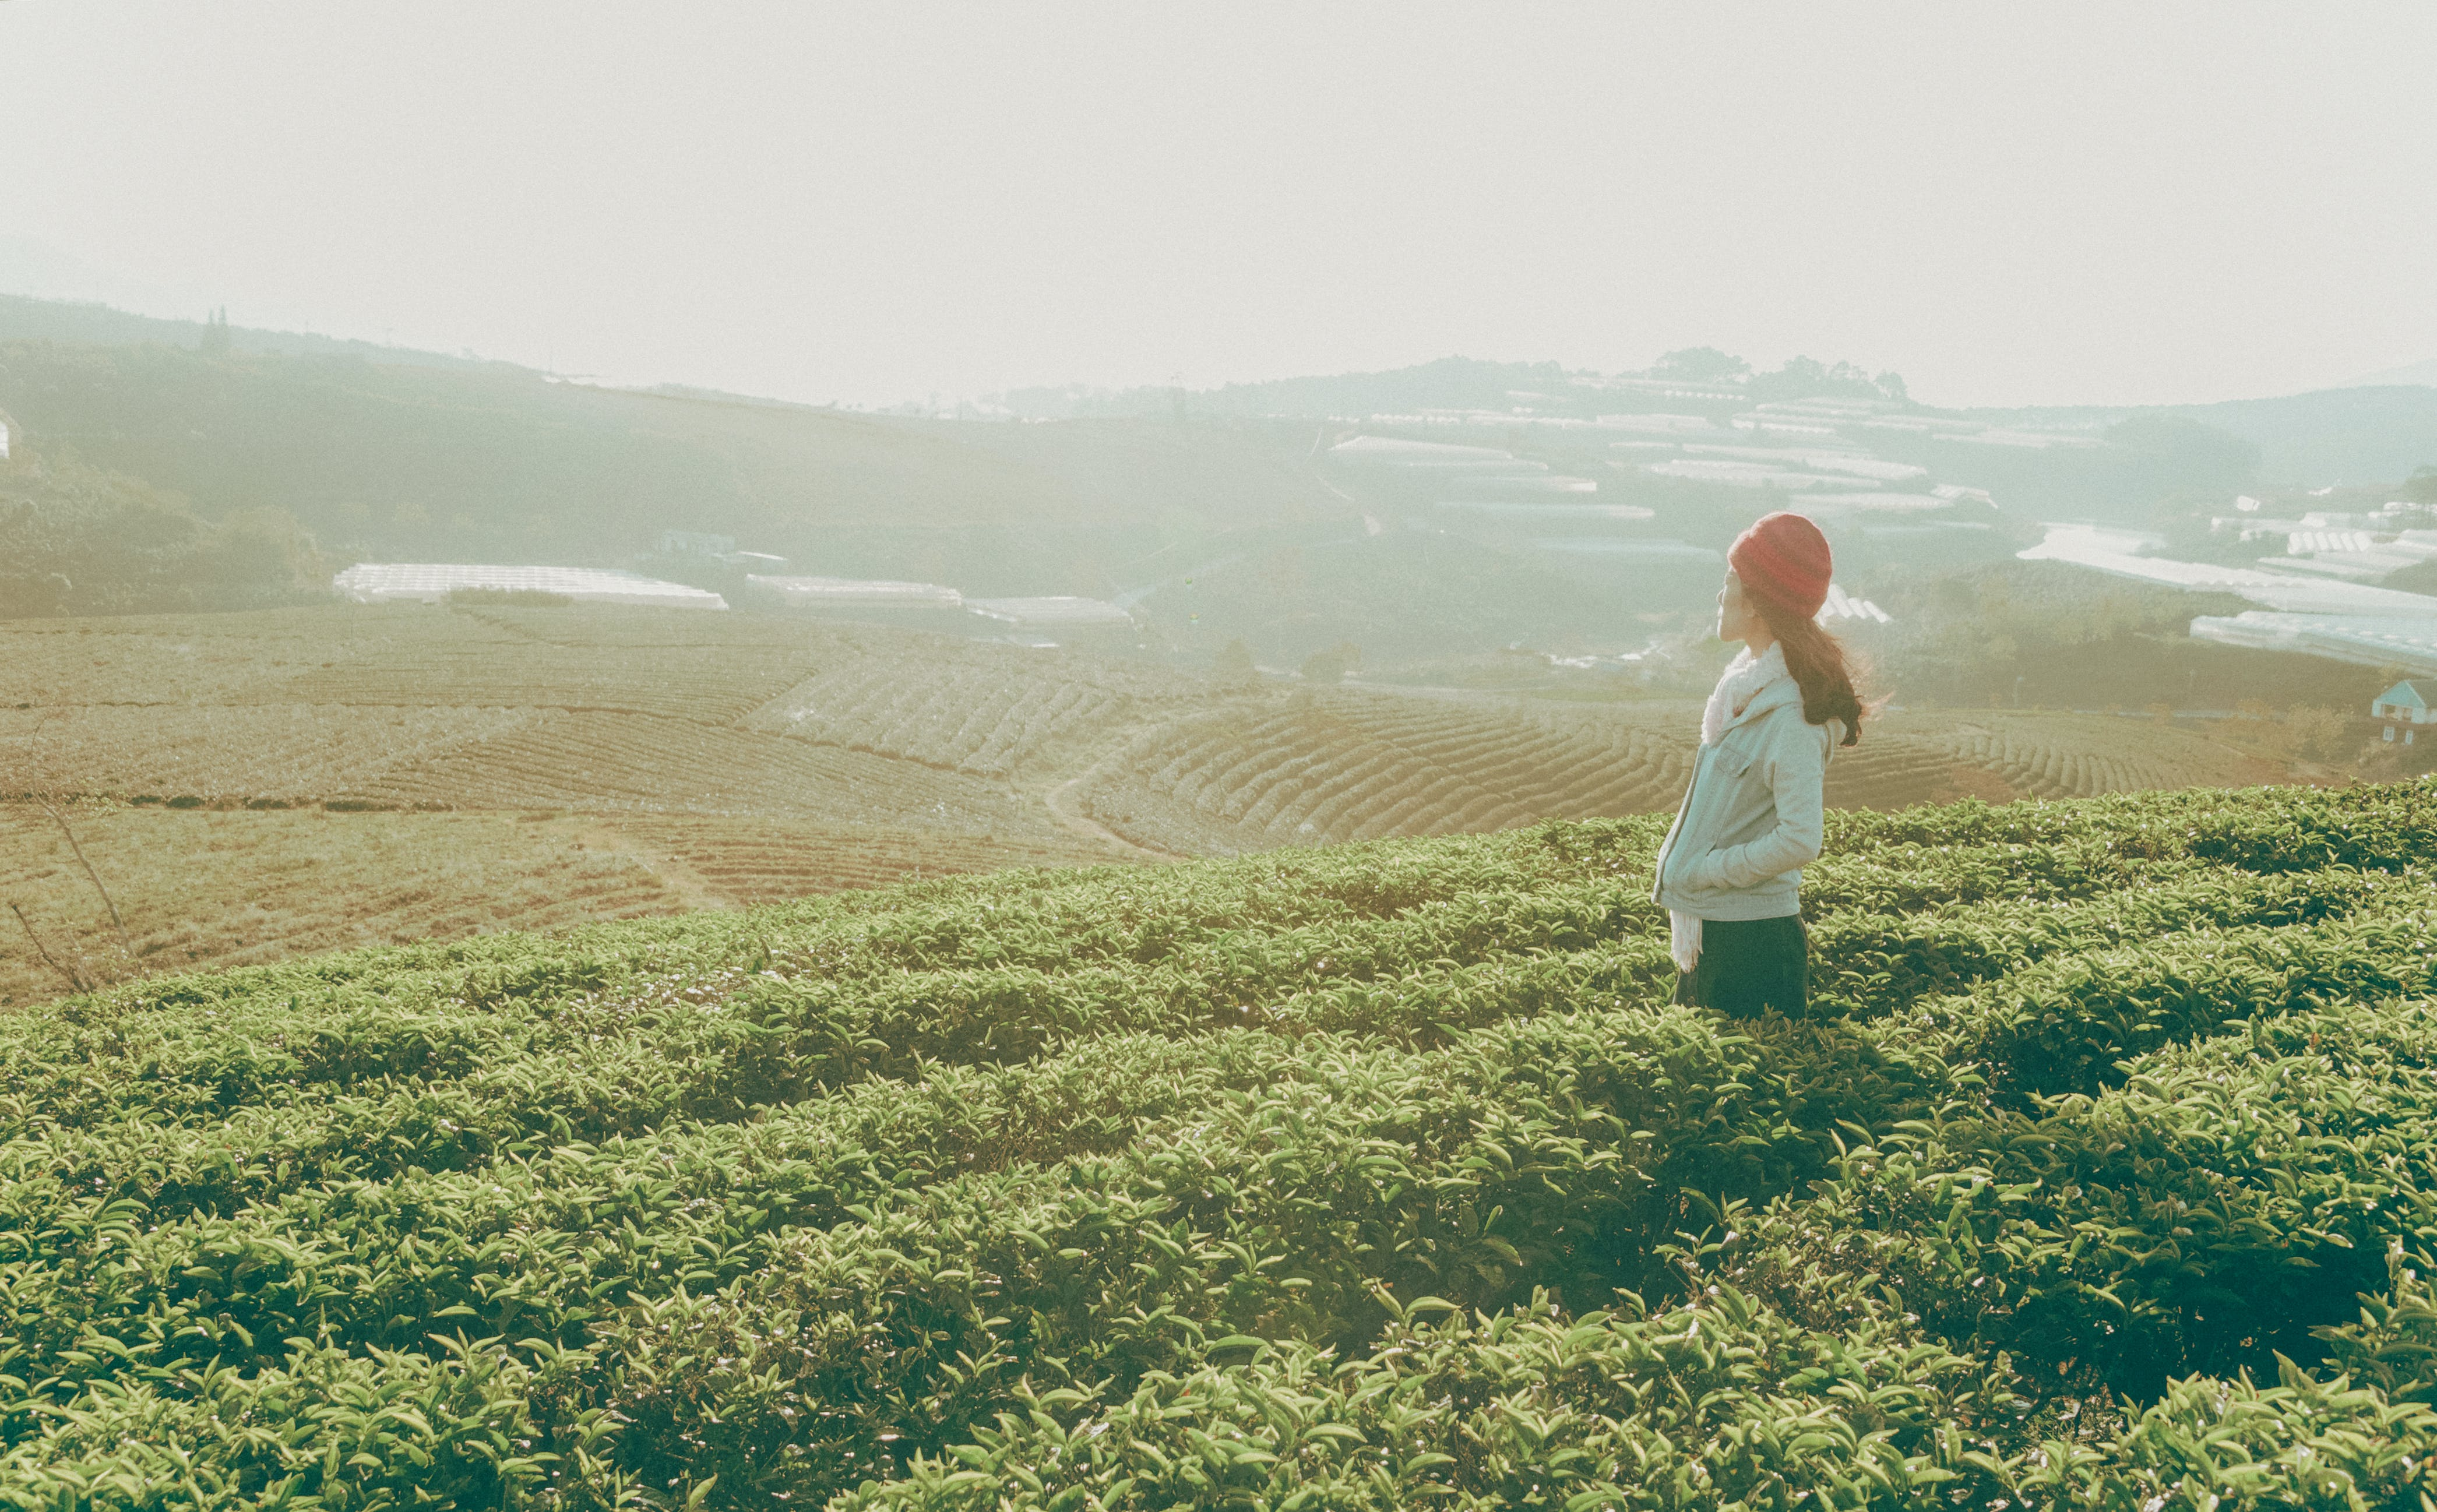 Woman Standing Looking over the Horizon Surrounded by Green Leaf Plantation Field